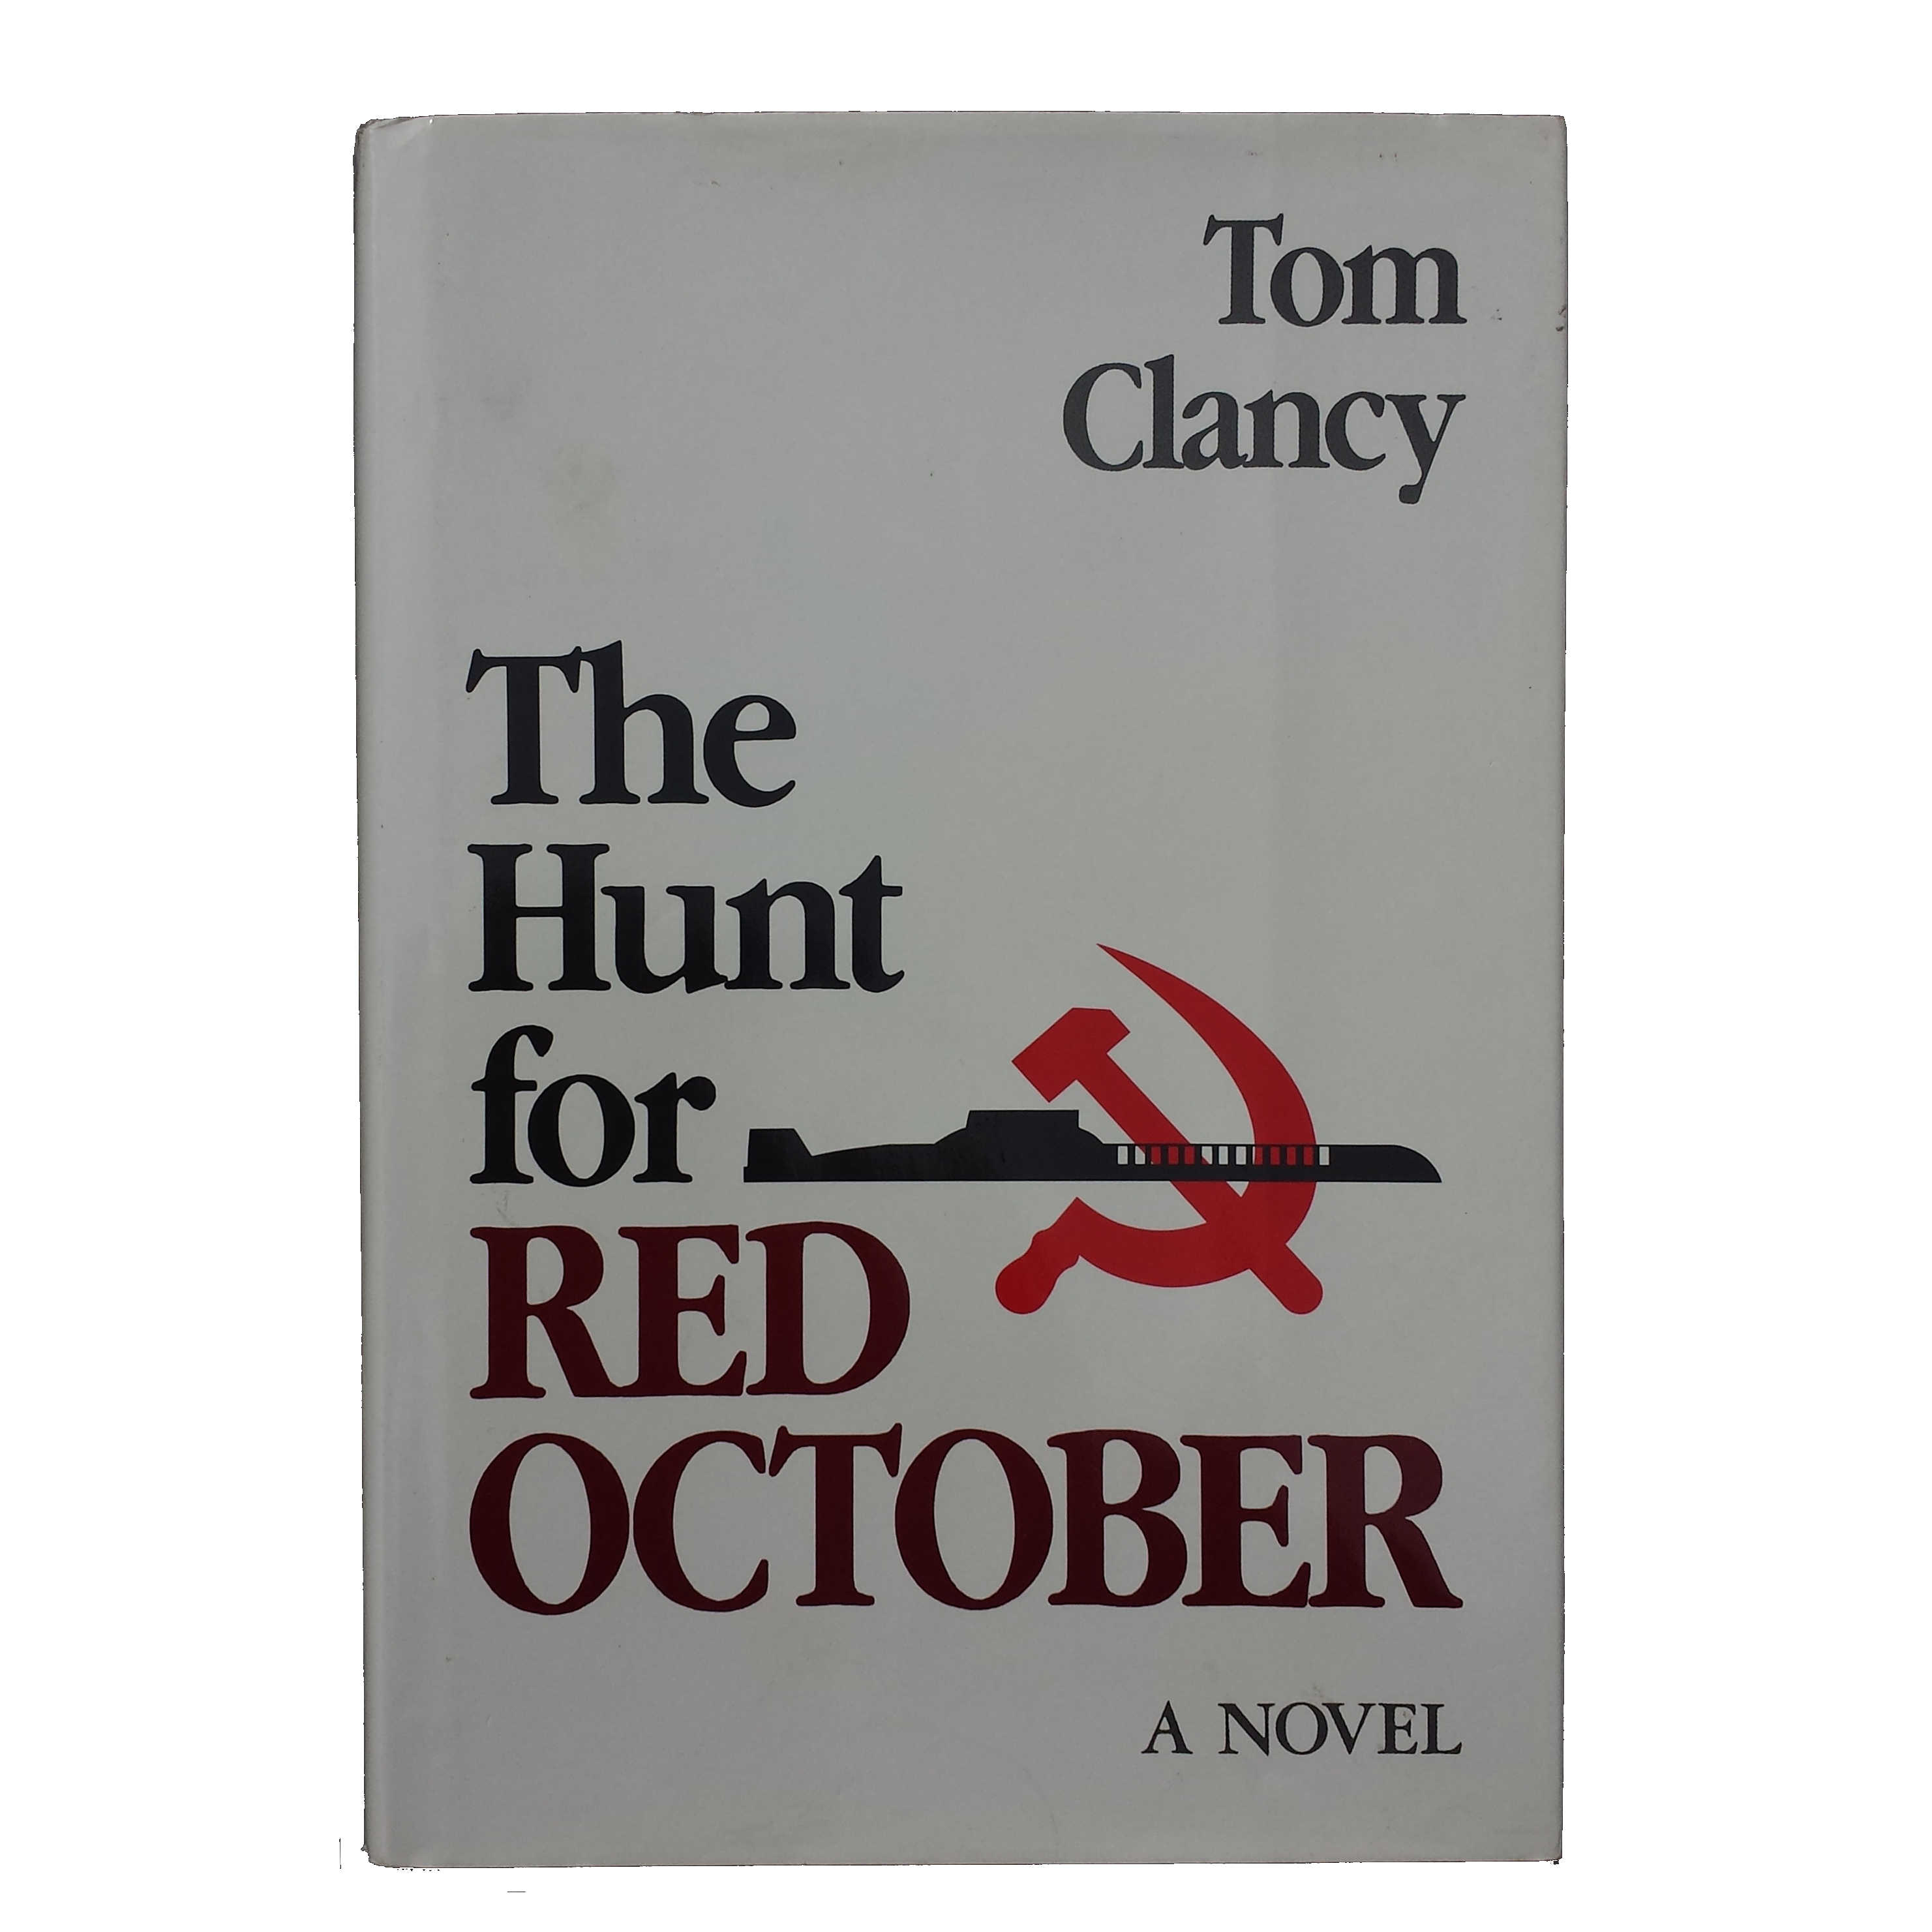 the hunt for red october by tom clancy essay The #1 new york times bestseller that launched the phenomenal career of tom  clancy—a gripping military thriller that introduced the world to his.